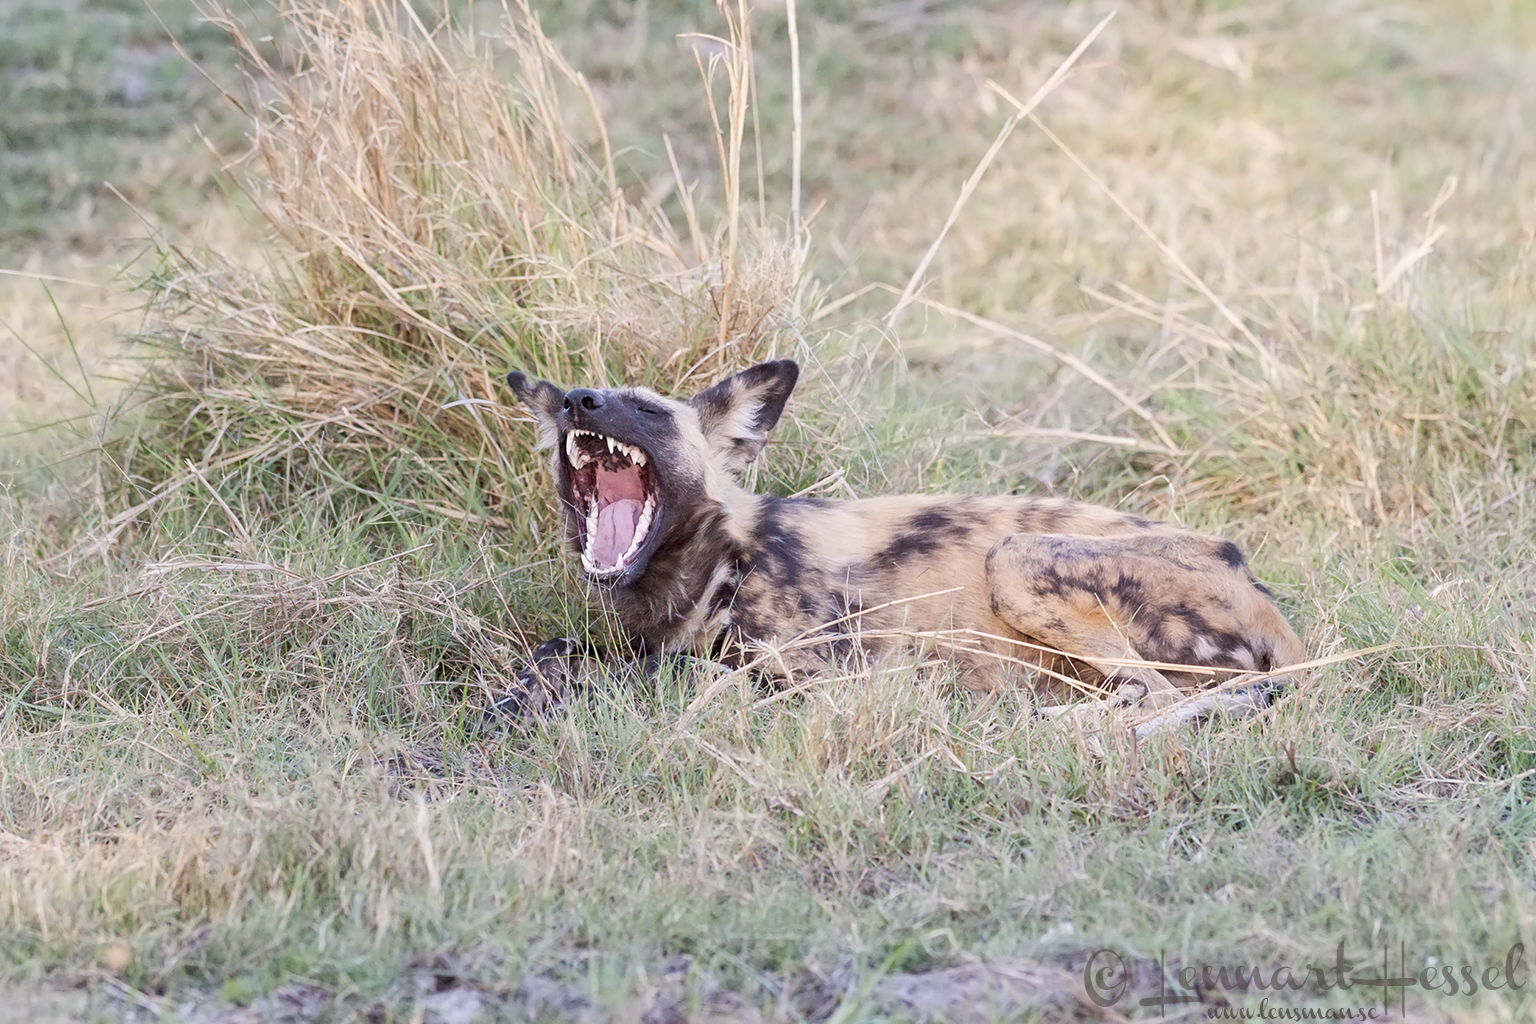 African Wild Dog in Moremi Game Reserve, Botswana